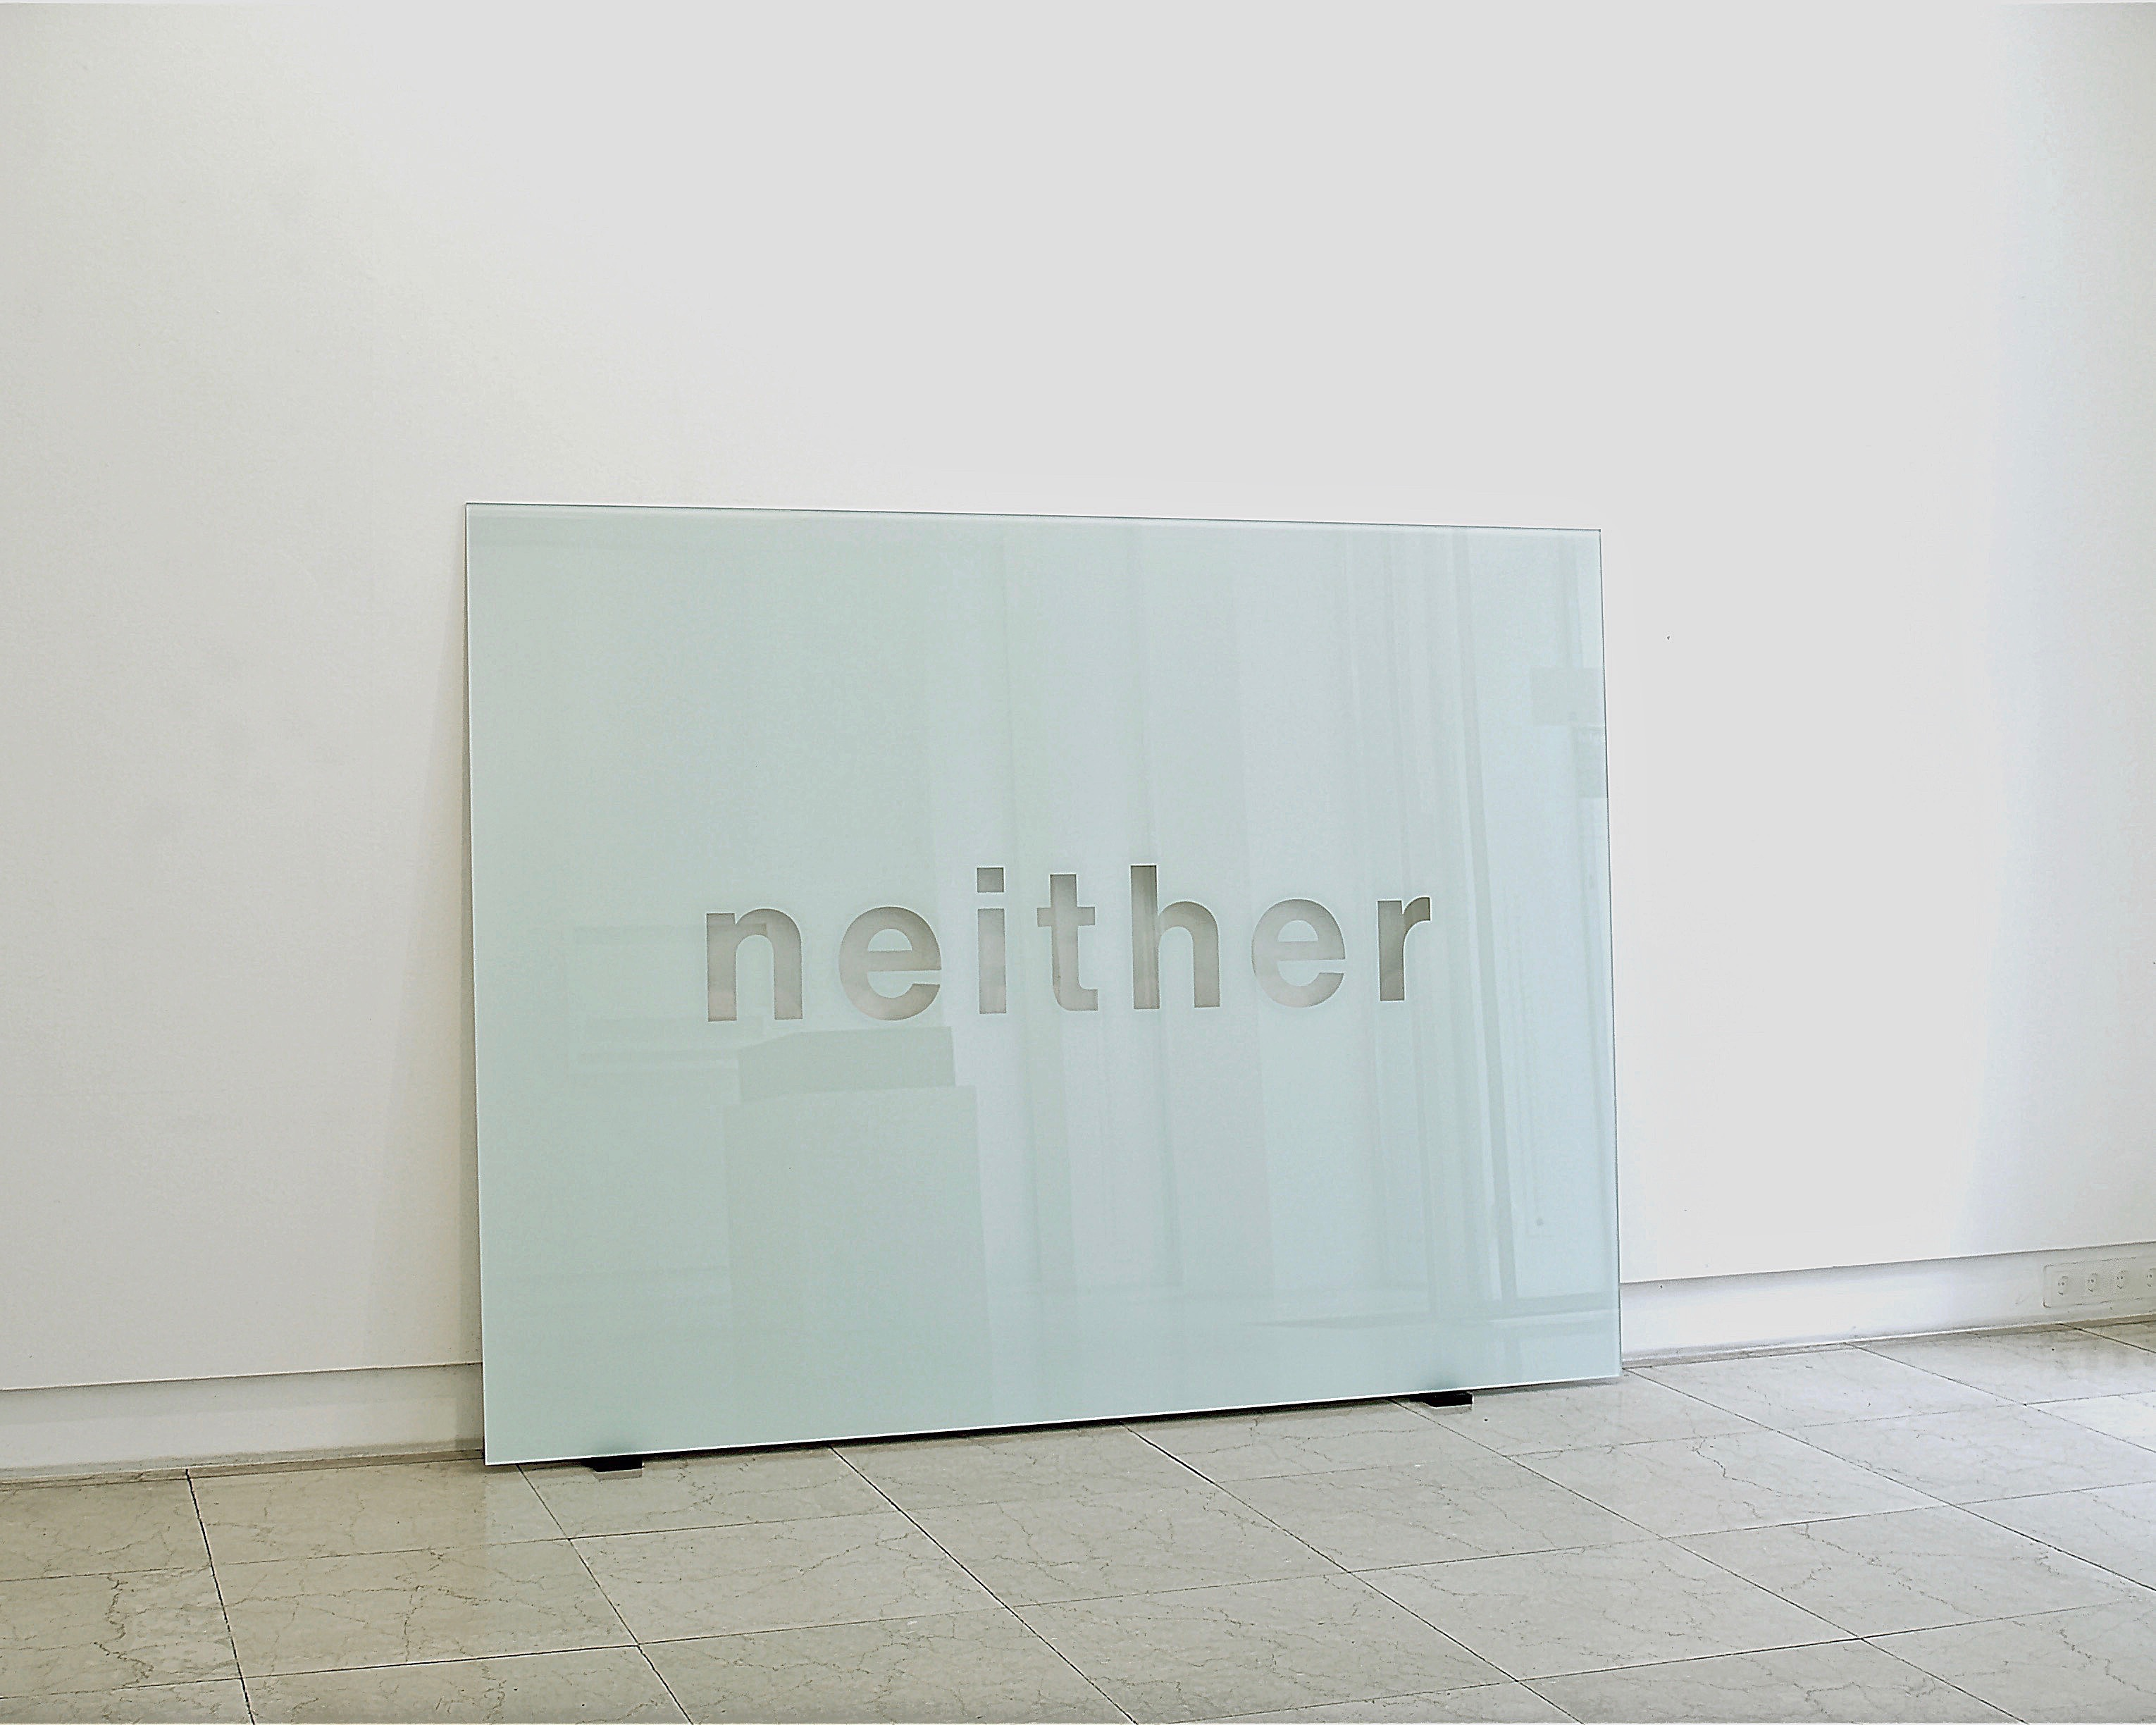 Neither<br>2005, Hinterglasmalerei / reverse glass painting, 150x200cm